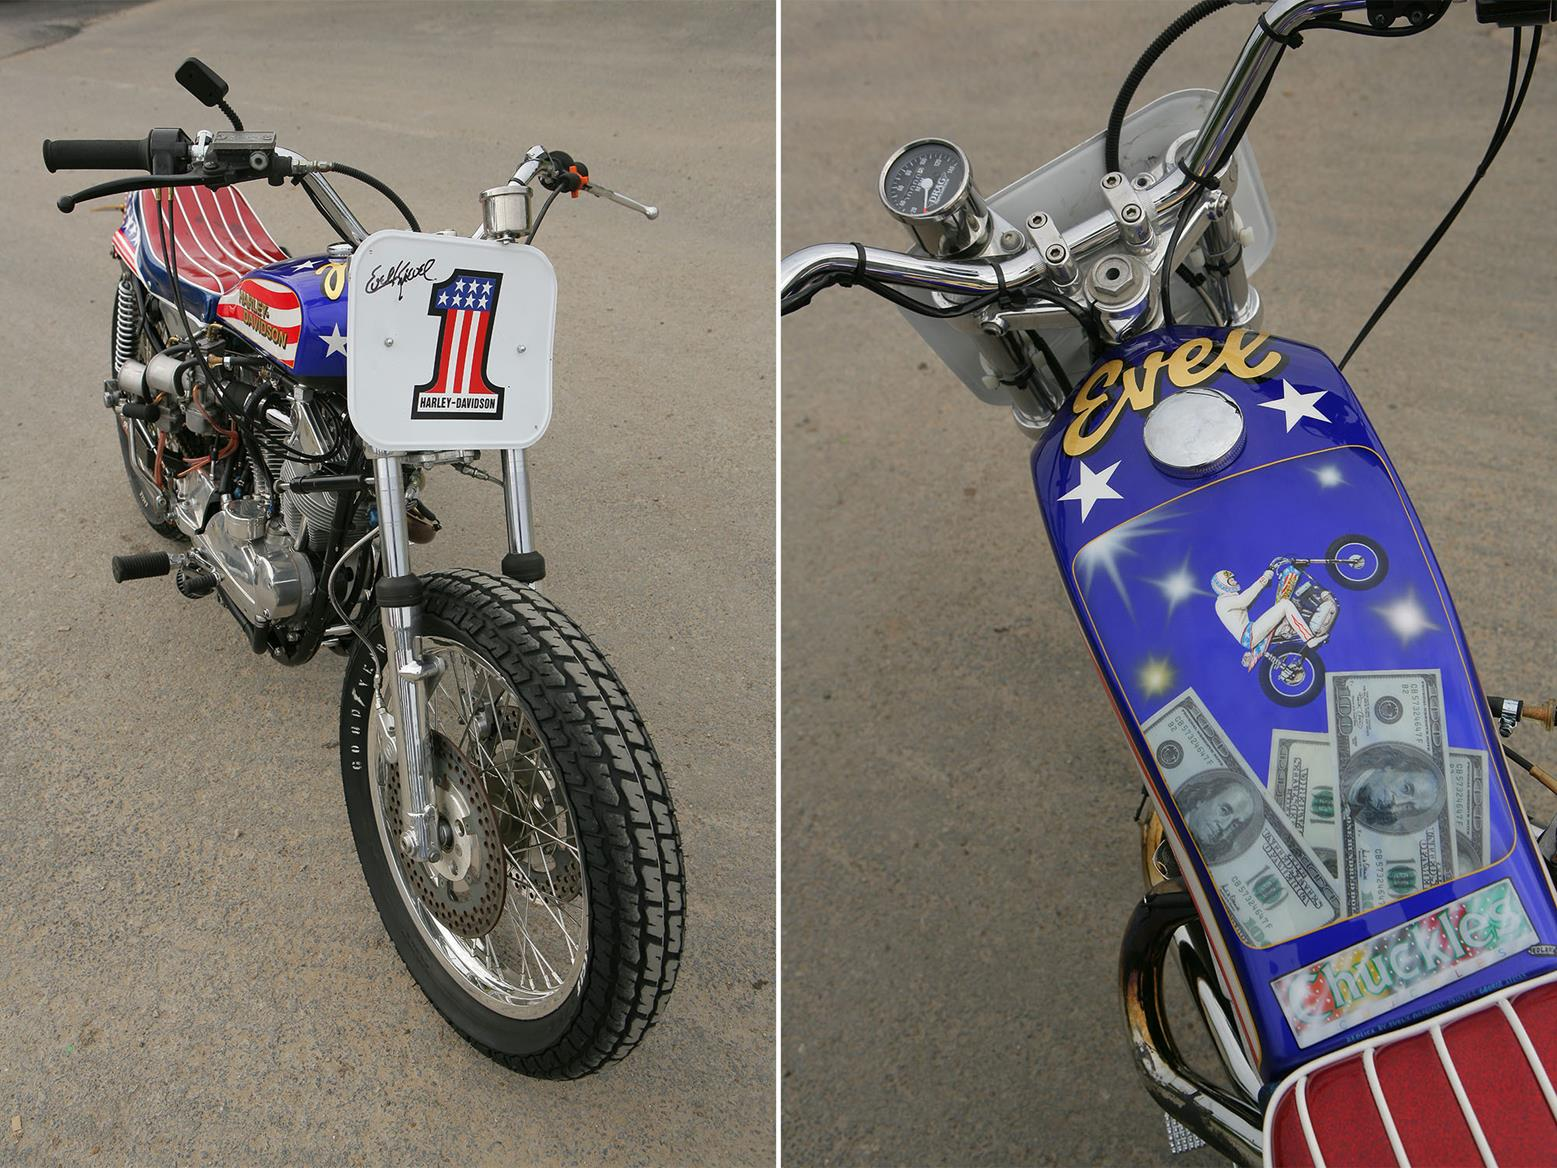 The XR750 replica feels faster than a bike this old should